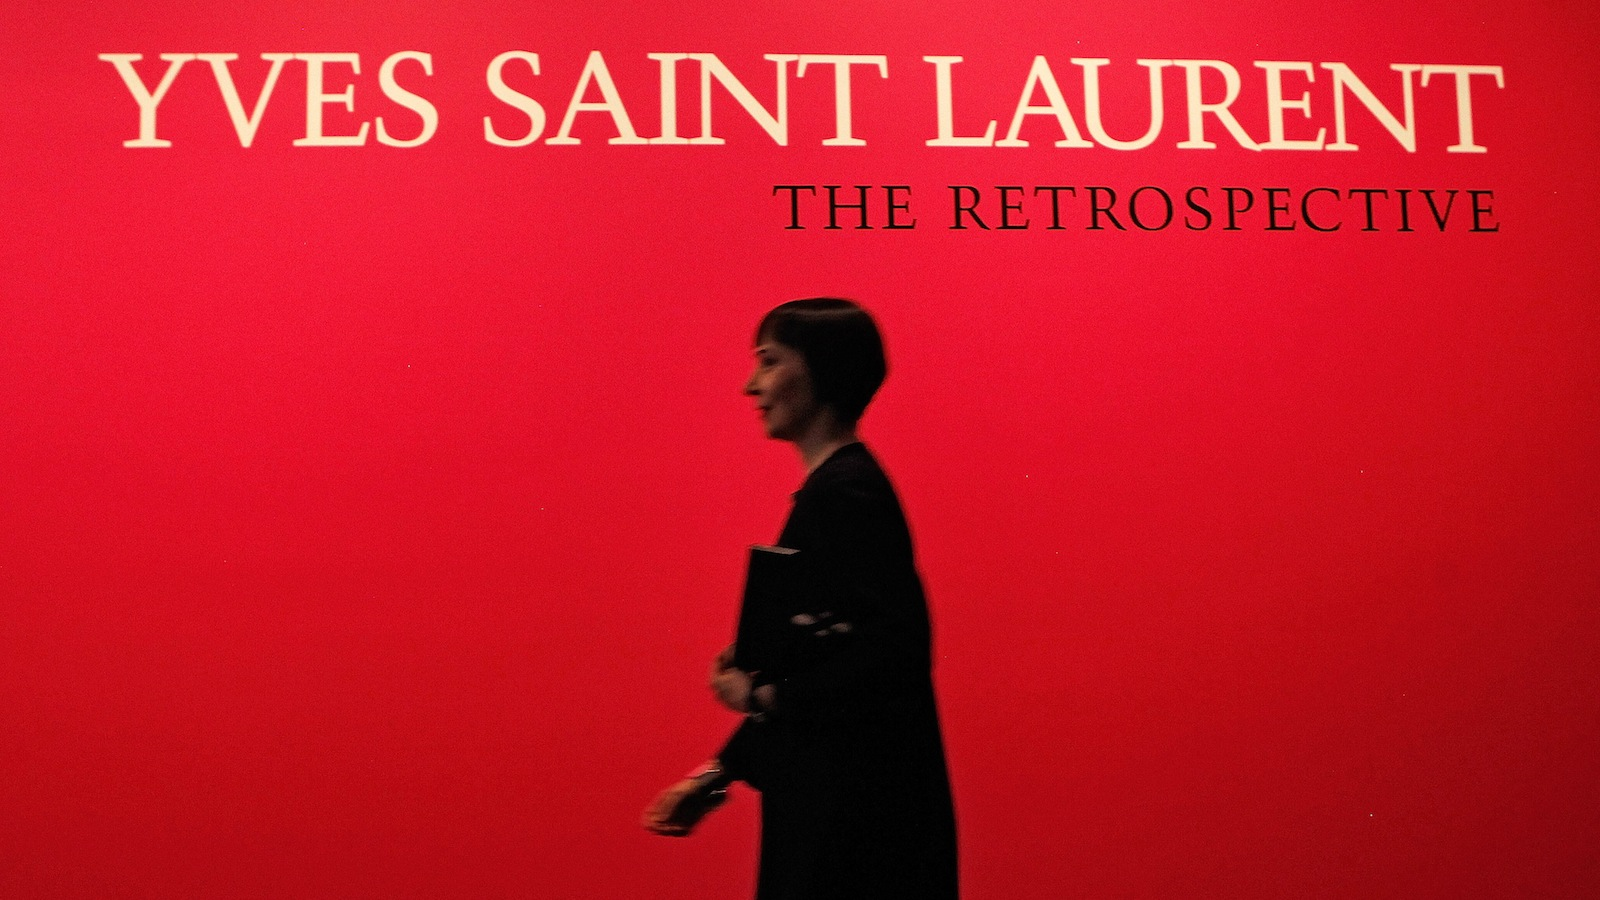 Apple Hired The CEO Of Yves Saint Laurent To Work On Special Projects